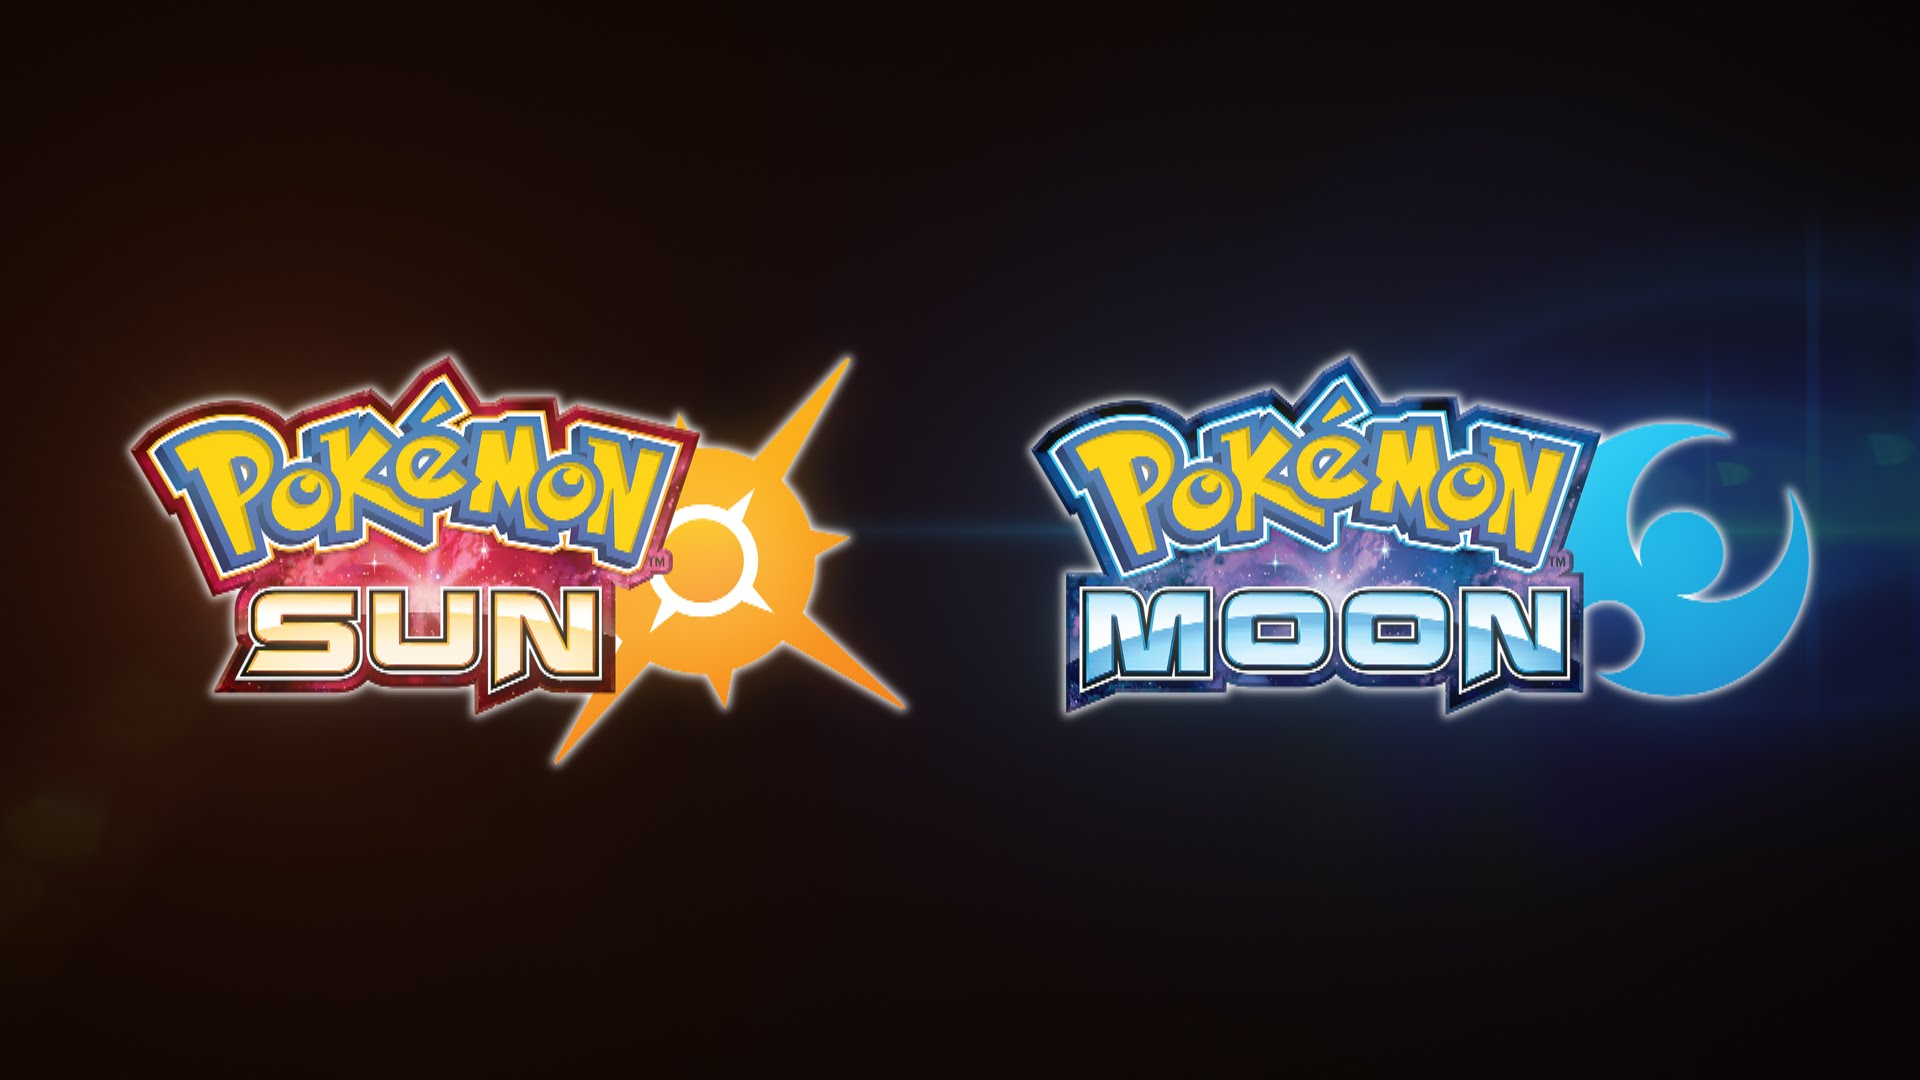 maxresdefault 17 First Pokemon Sun/Moon Trailer Reveals New Starter And Legendary Monsters